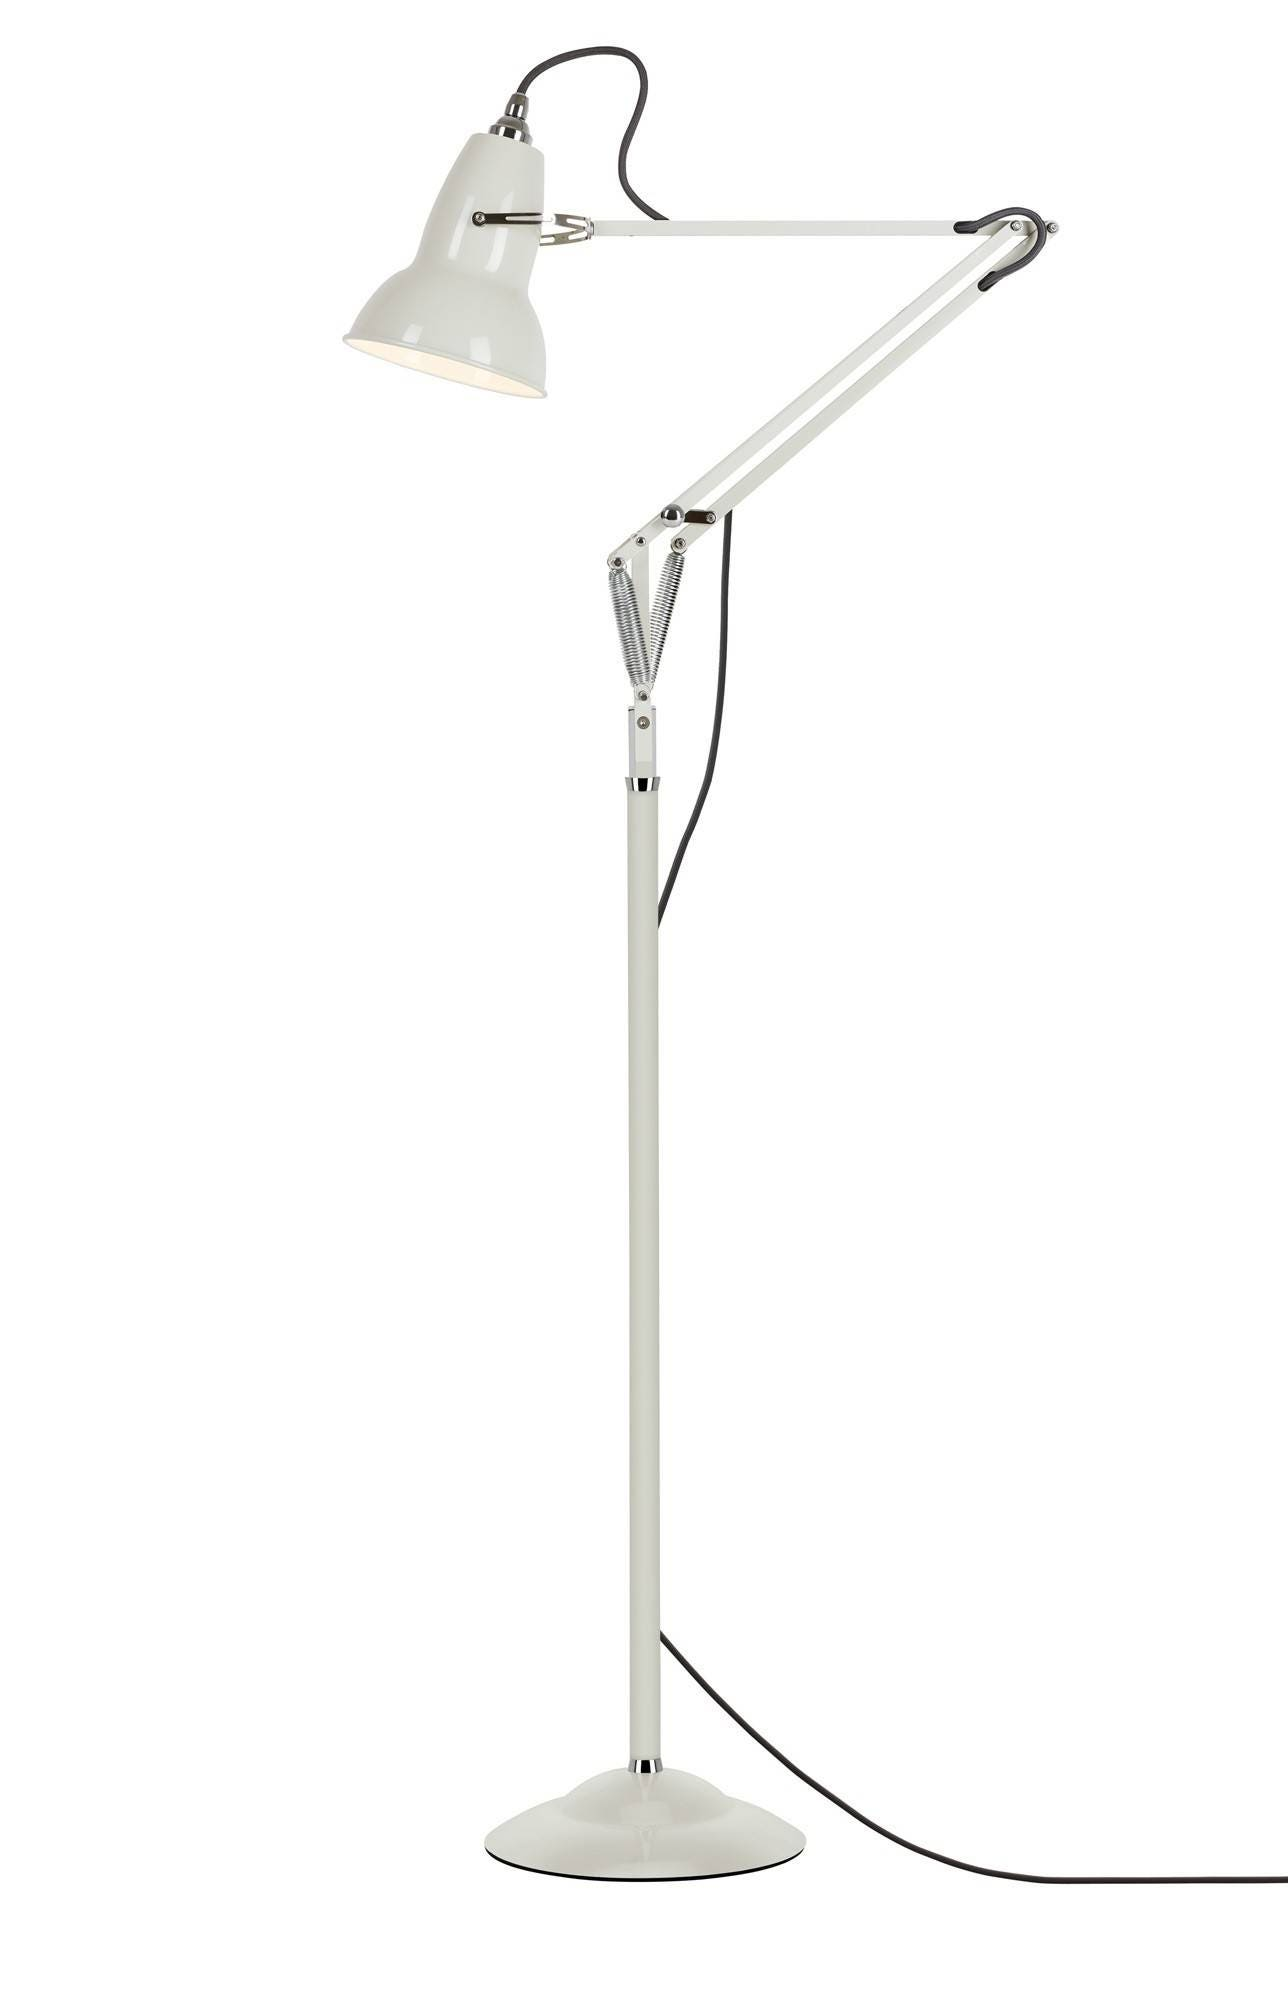 Anglepoise floor lamp b and q a large herbert terry anglepoise anglepoise floor lamp b and q anglepoise original floor lamp gr canada aloadofball Image collections